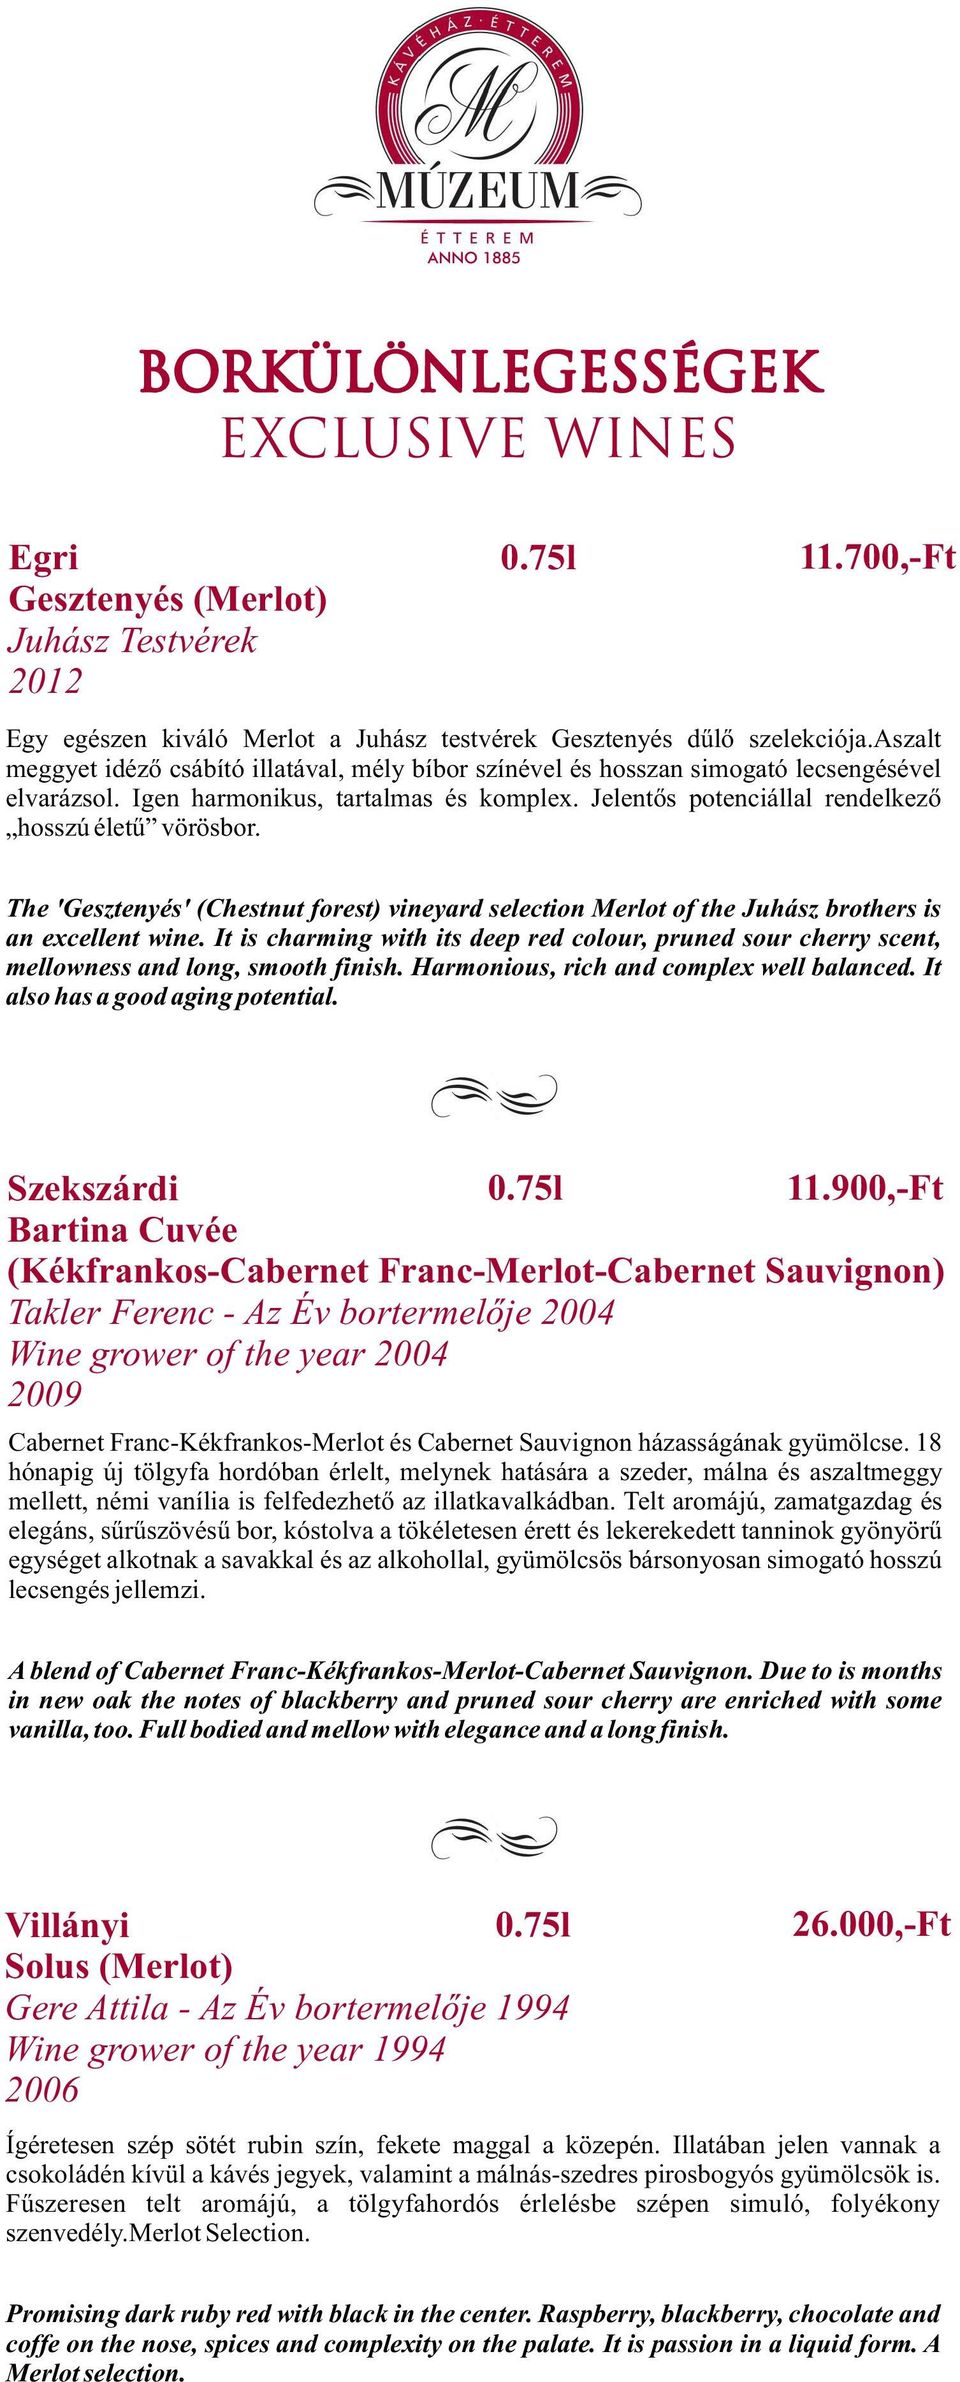 The 'Gesztenyés' (Chestnut forest) vineyard selection Merlot of the Juhász brothers is an excellent wine.